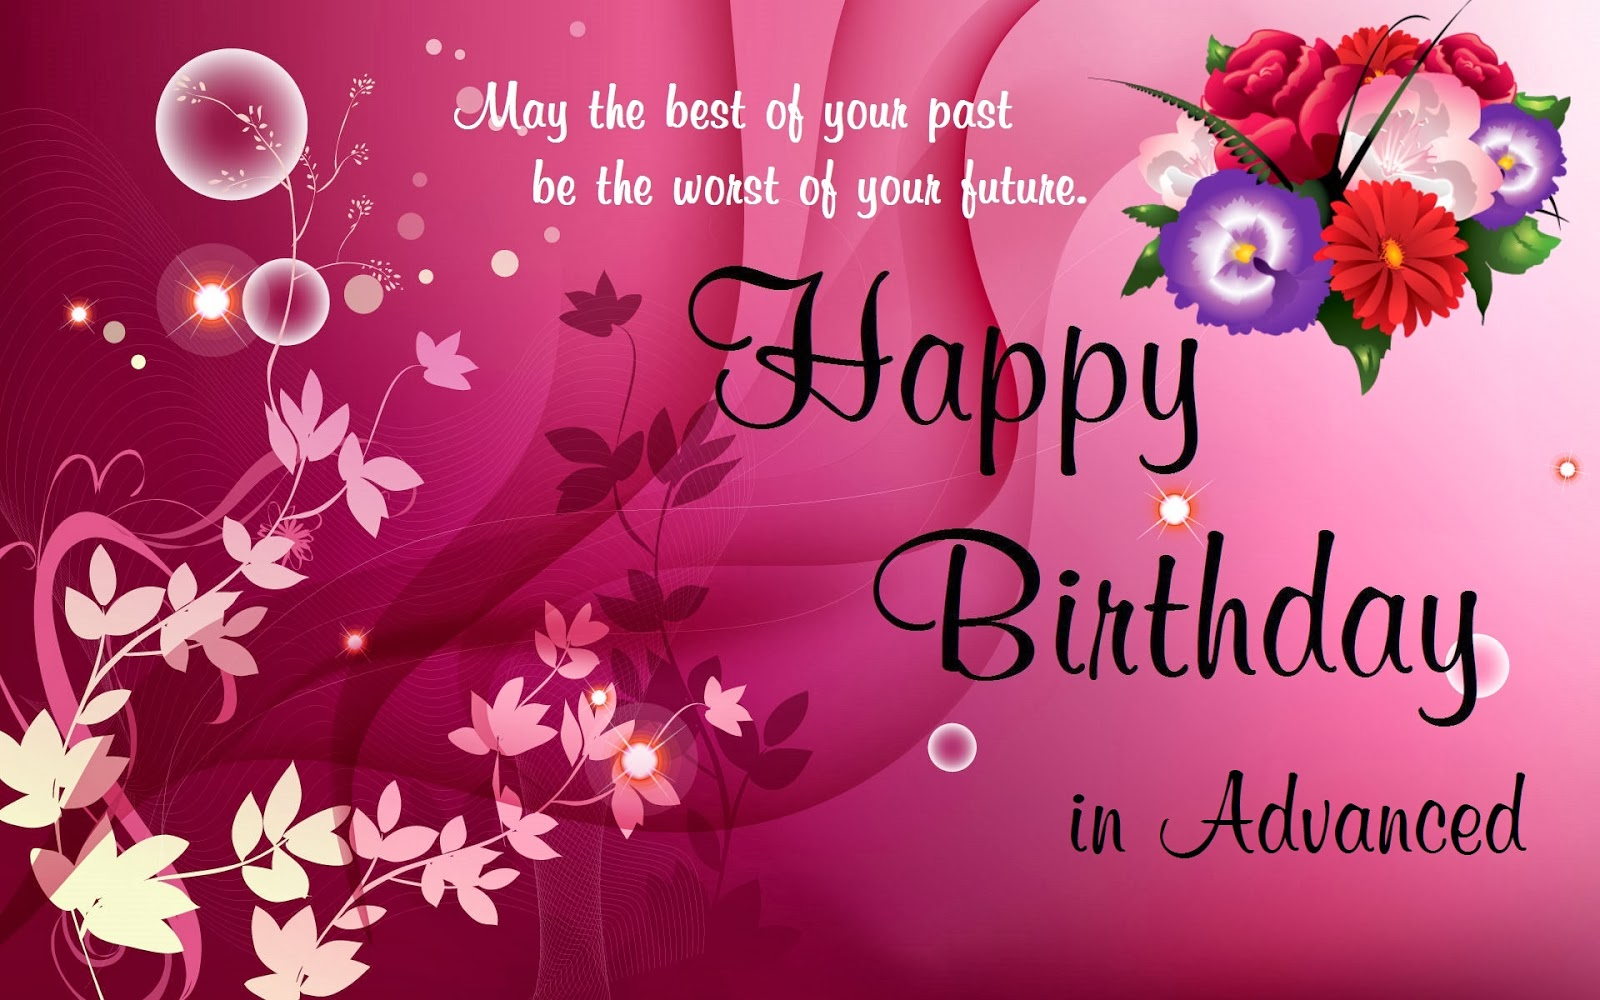 Happy Birthday Wishes English Shayari ~ Romantic happy birthday wishes for wife with images and quotes